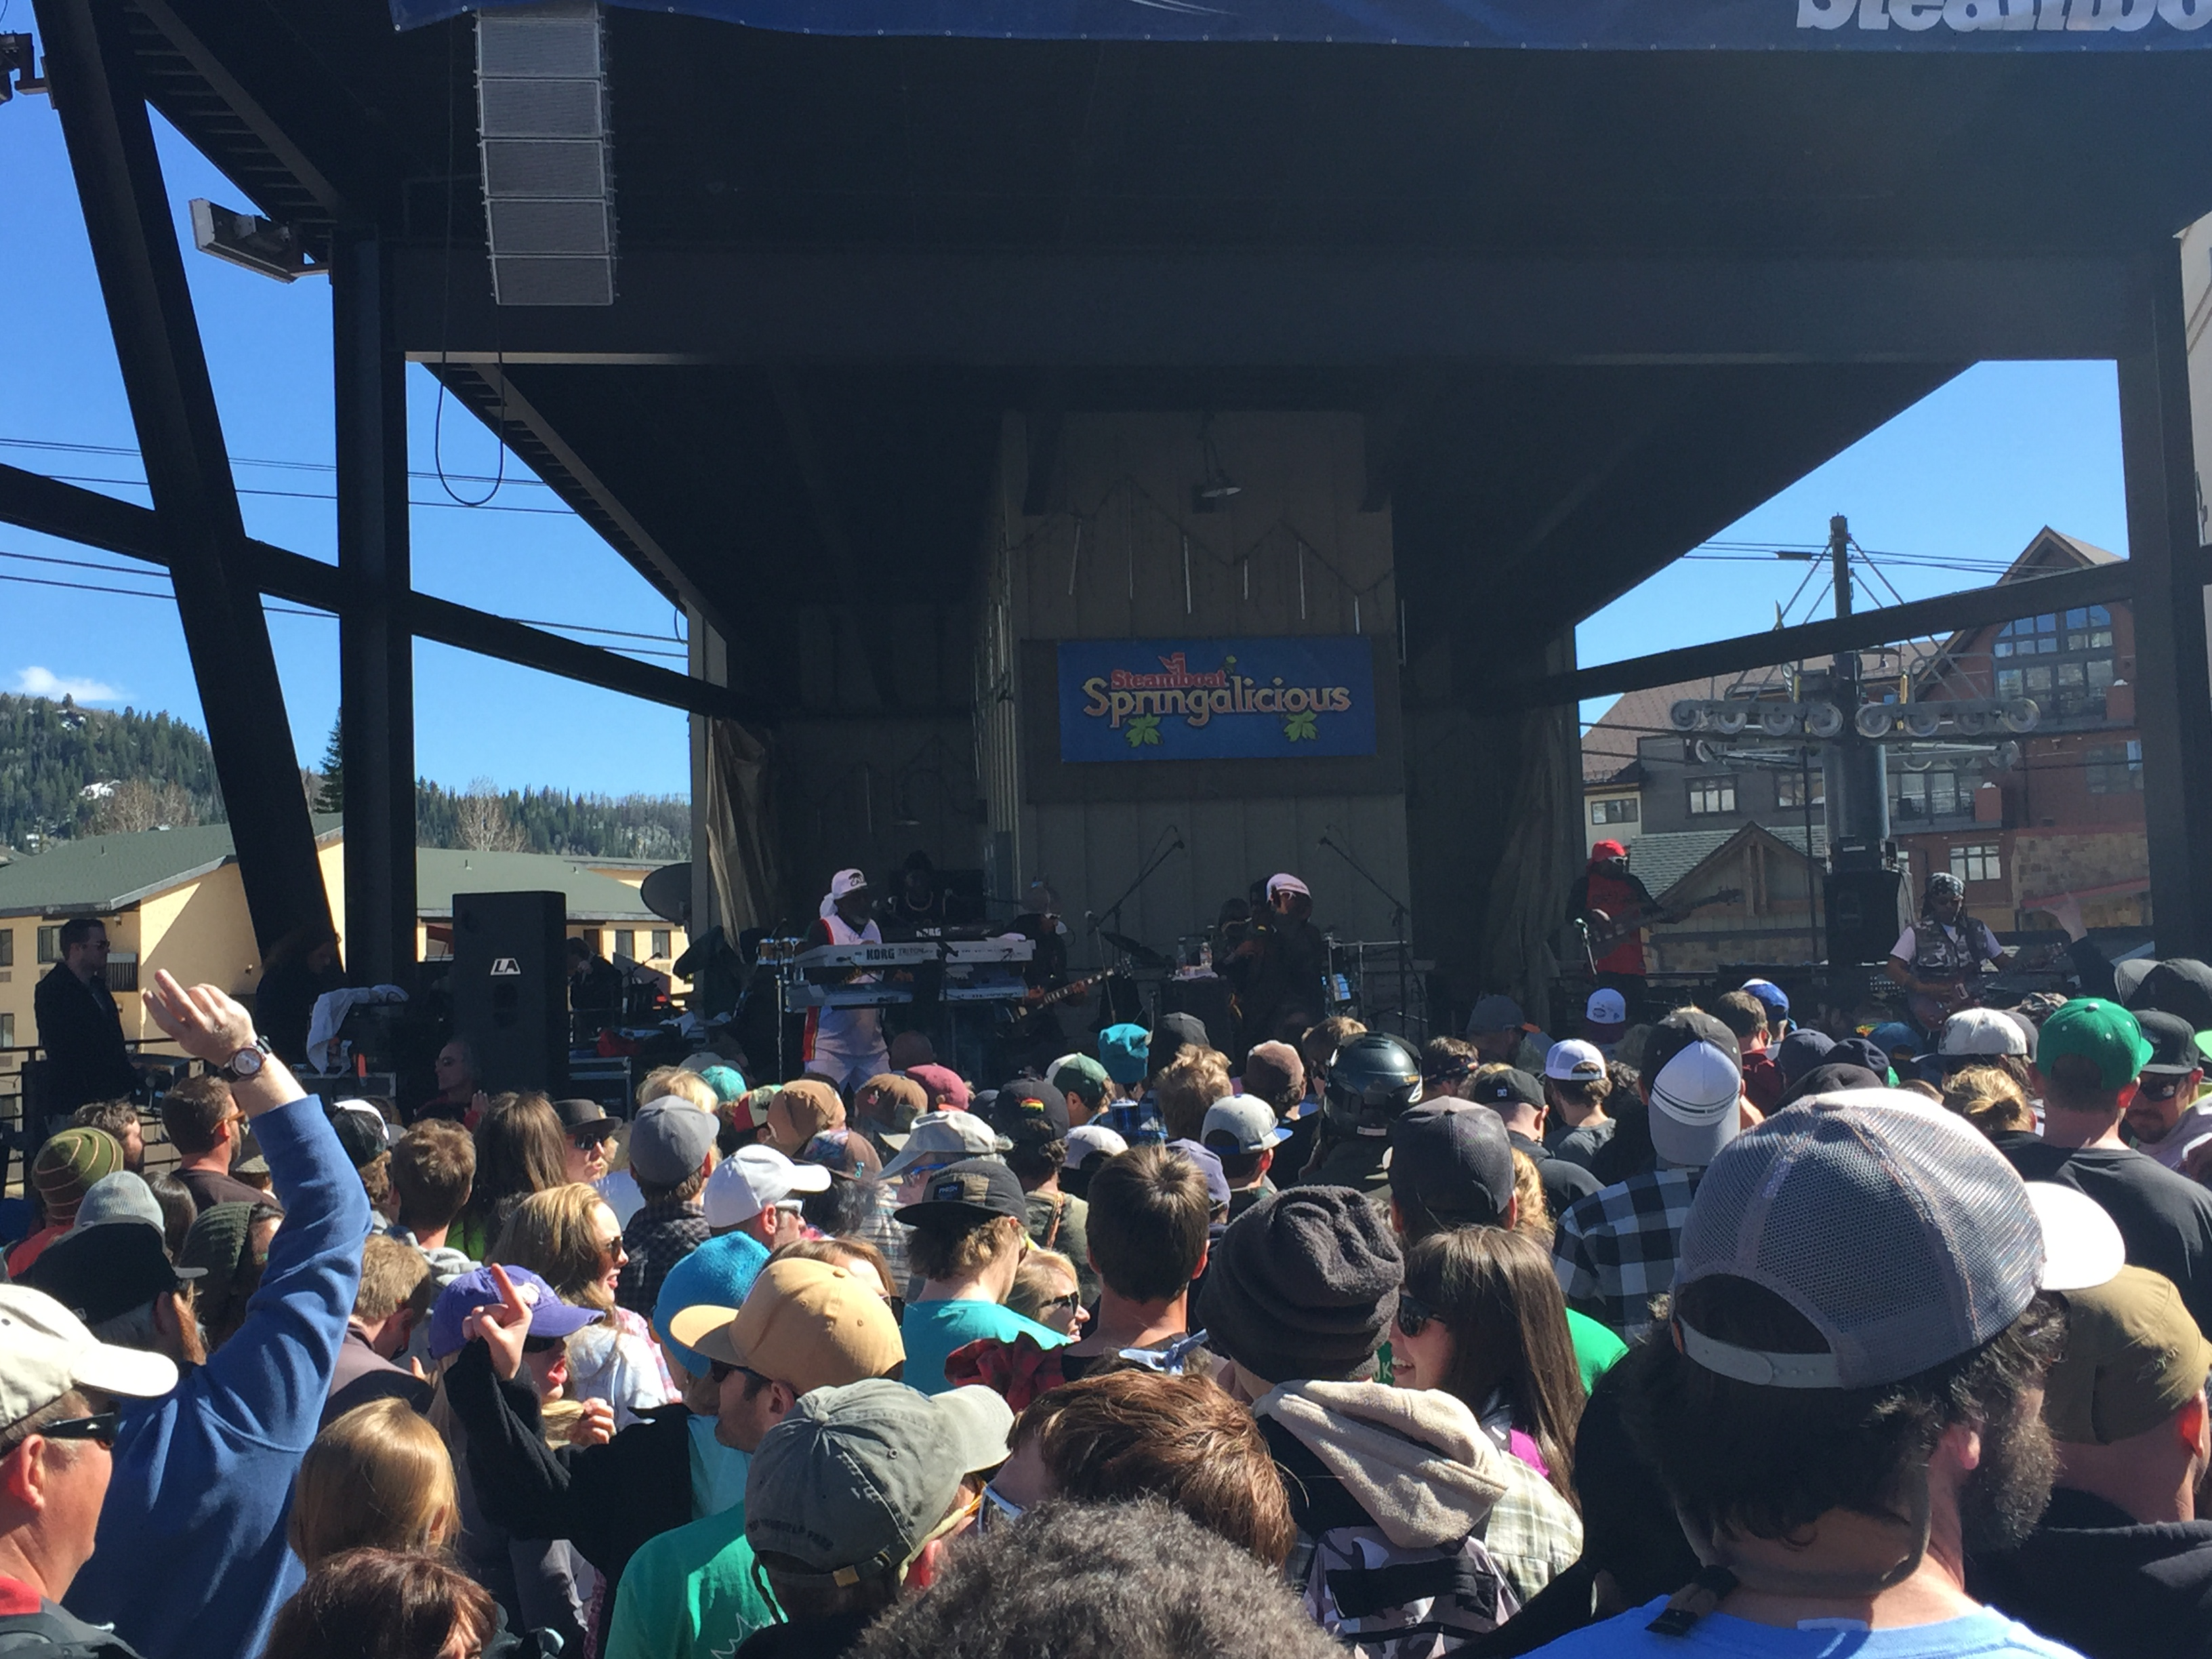 steel pulse, steamboat springs, springalicious, closing day, music in steamboat, band, reggae in steamboat, party at gondola square